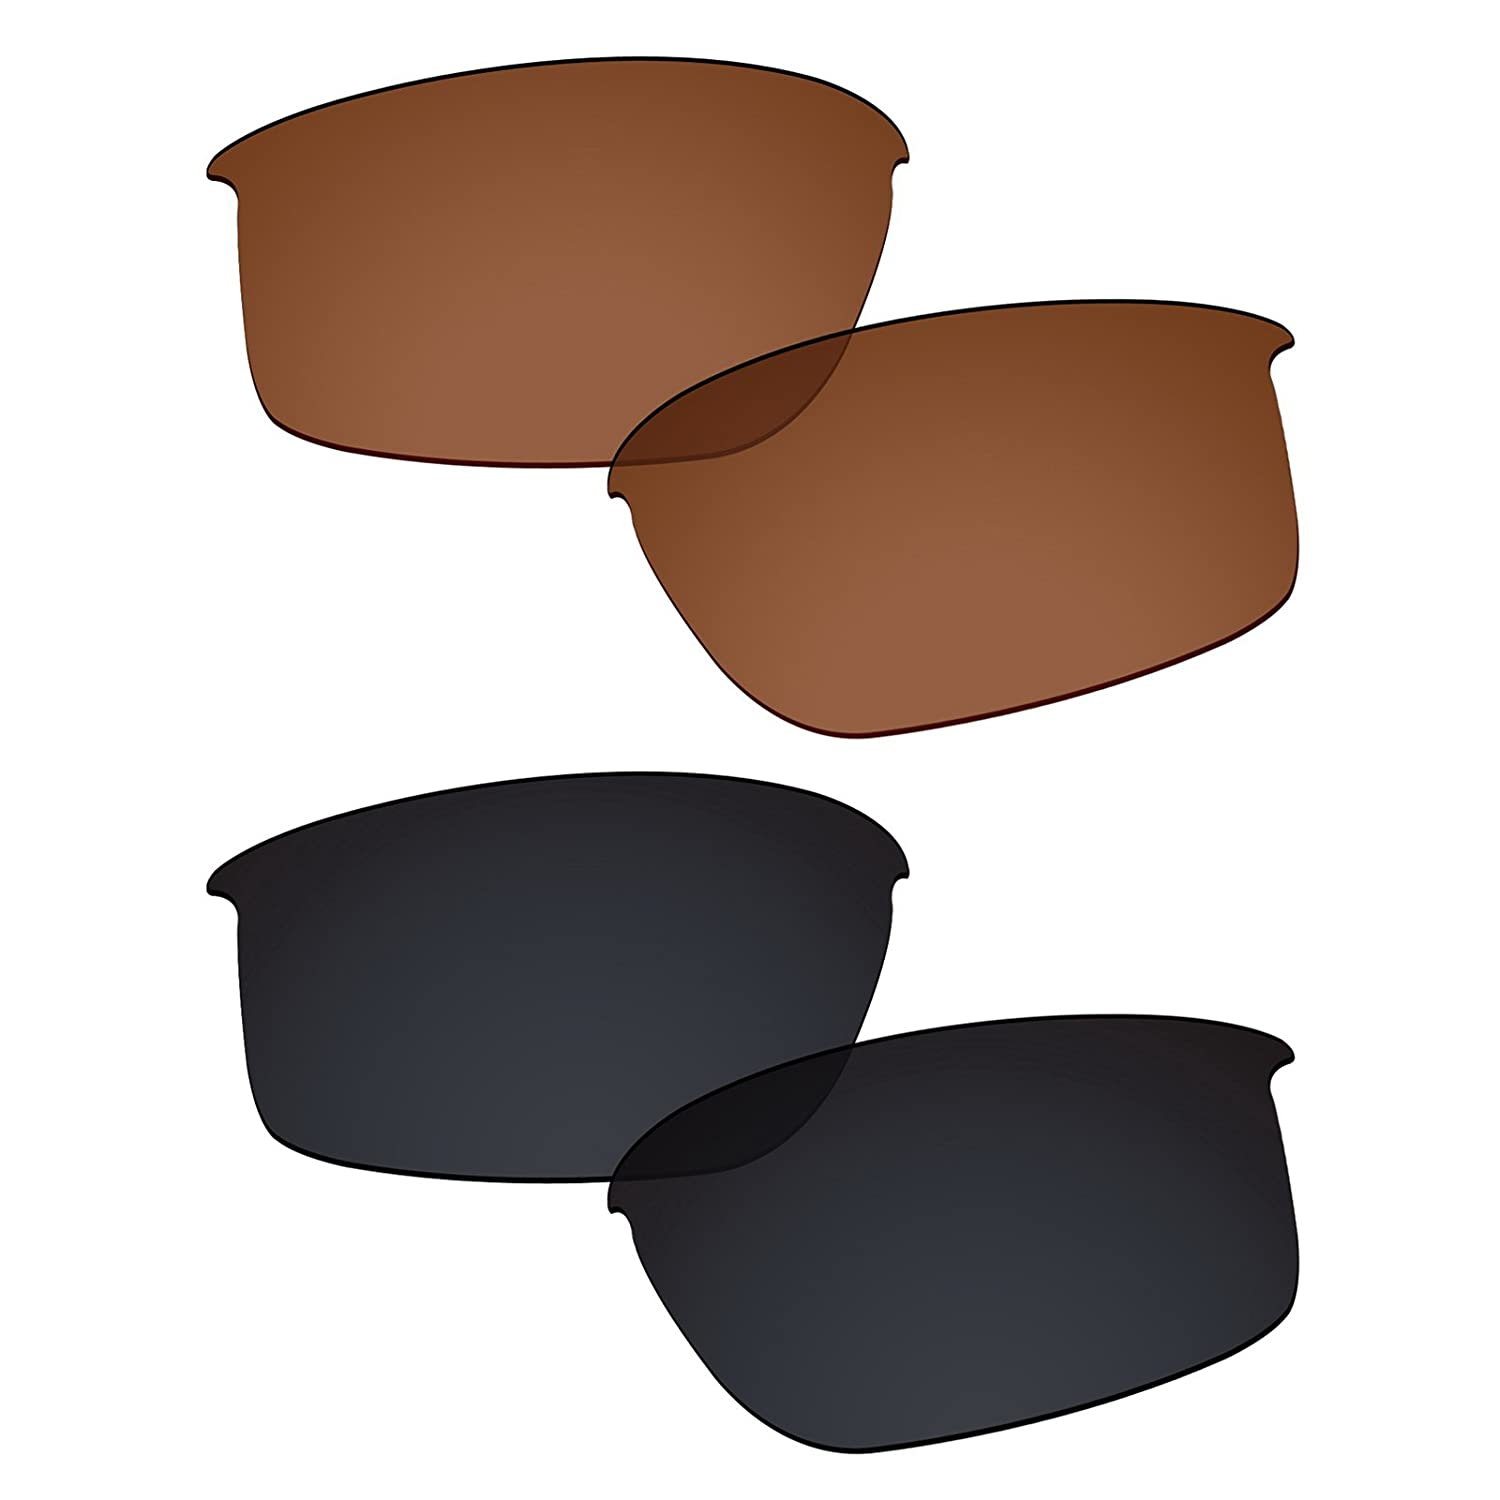 59a0a316b5 Amazon.com  Galvanic Replacement Lenses for Oakley Bottle Rocket Sunglasses  - Amber + Black Polarized - Combo Pack  Clothing